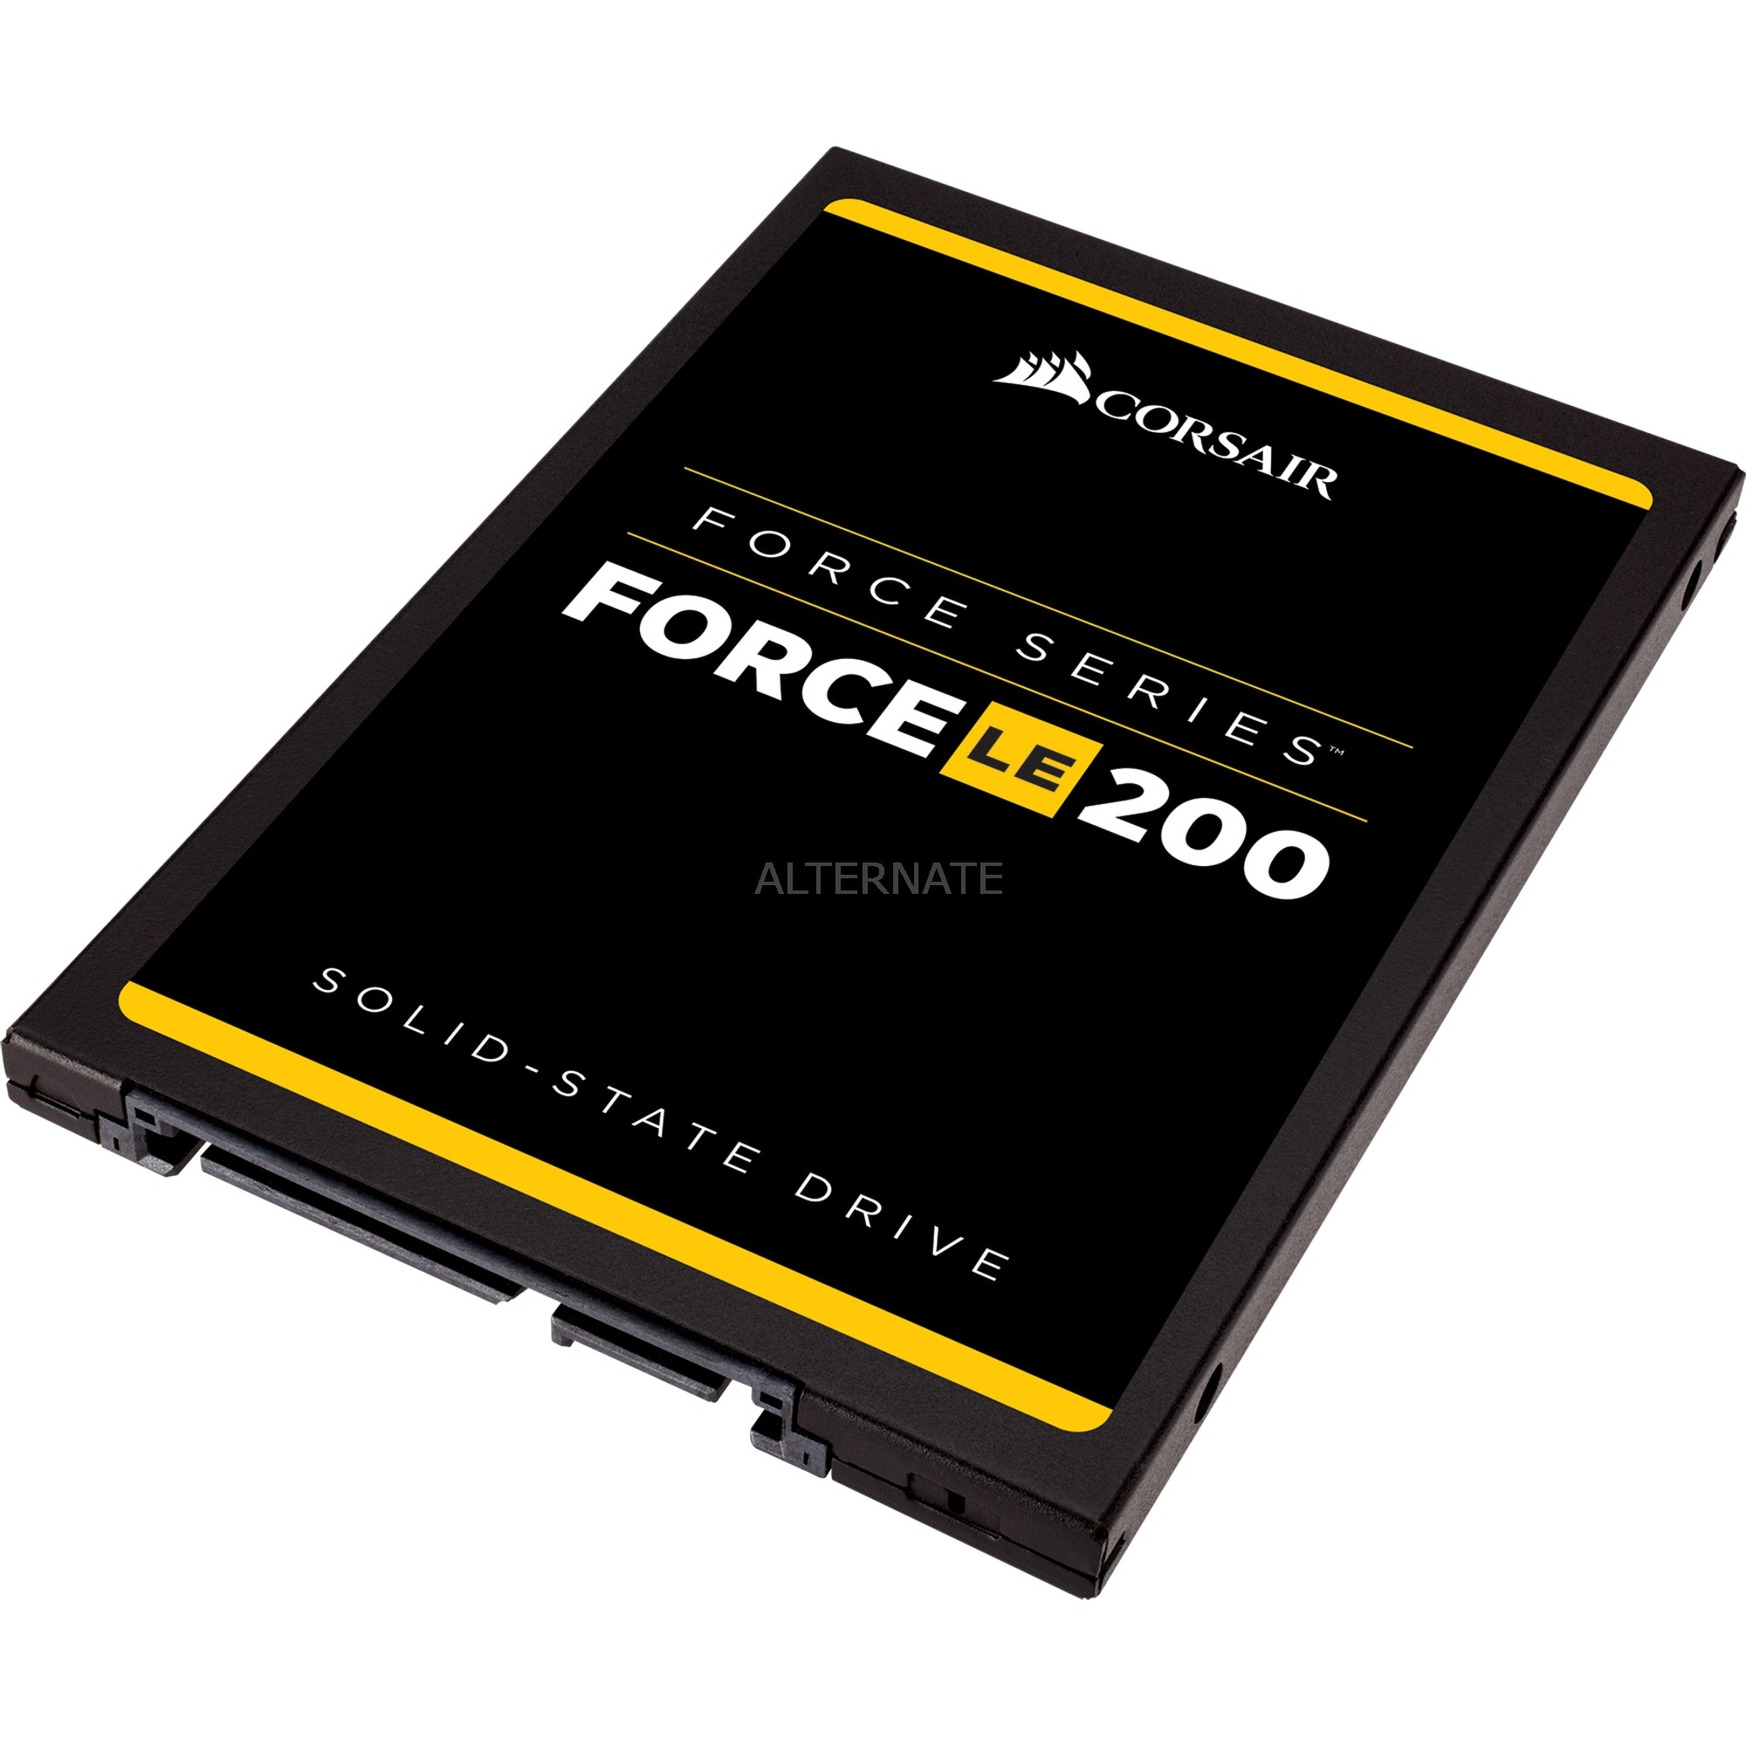 Force LE, SSD